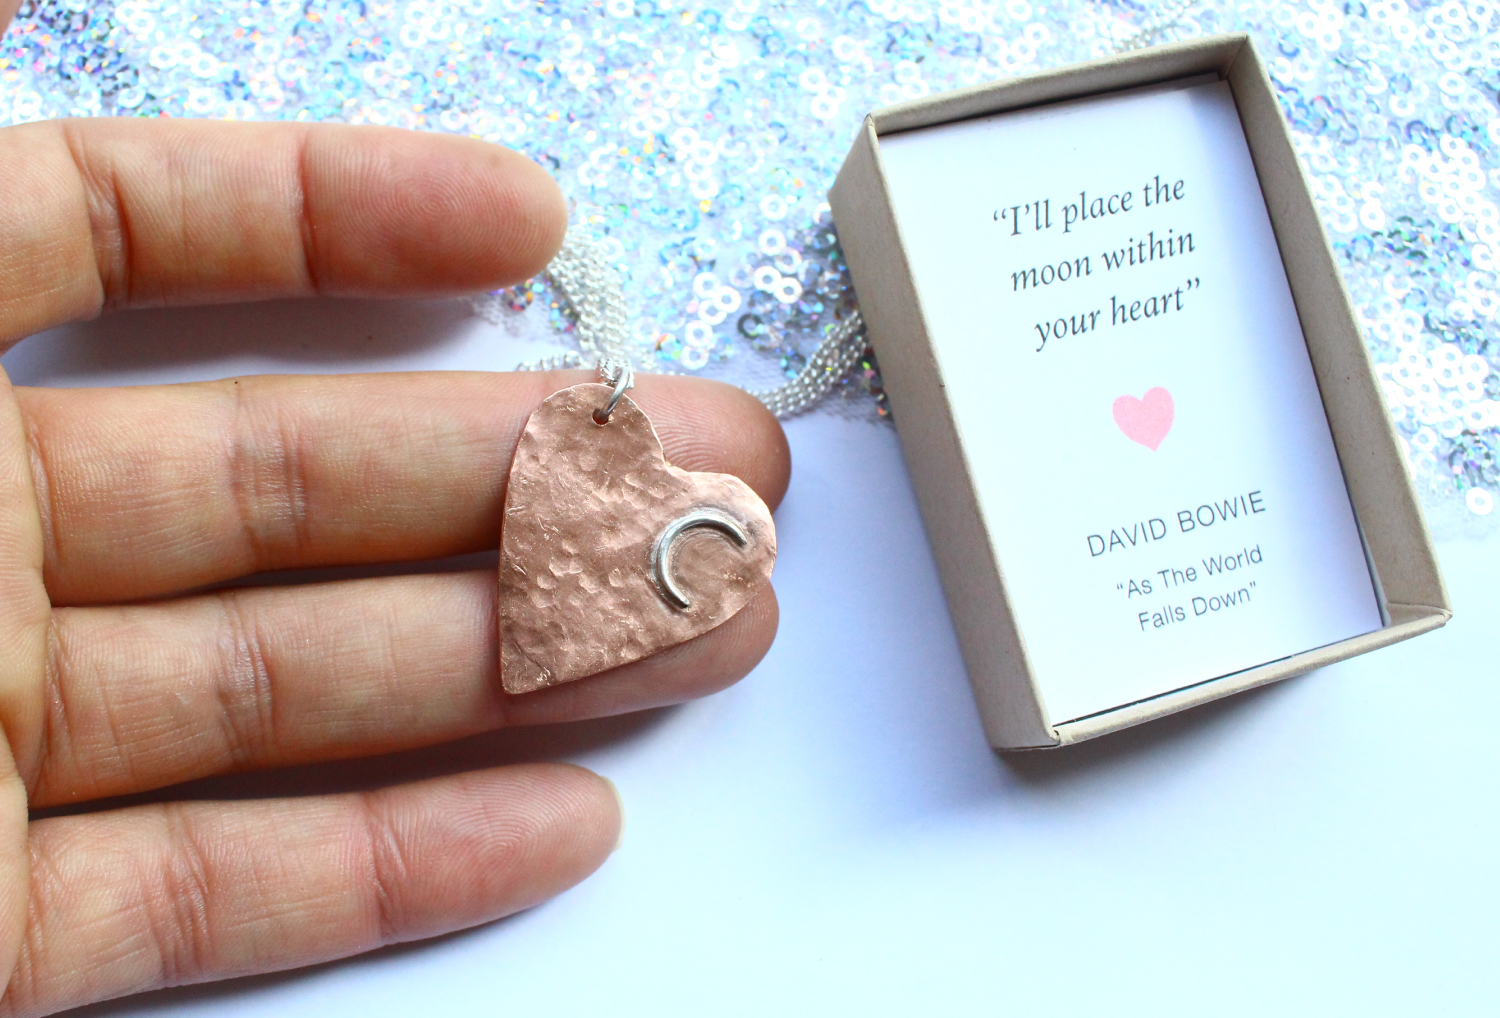 David Bowie Necklace Romantic Lyrics Inspired